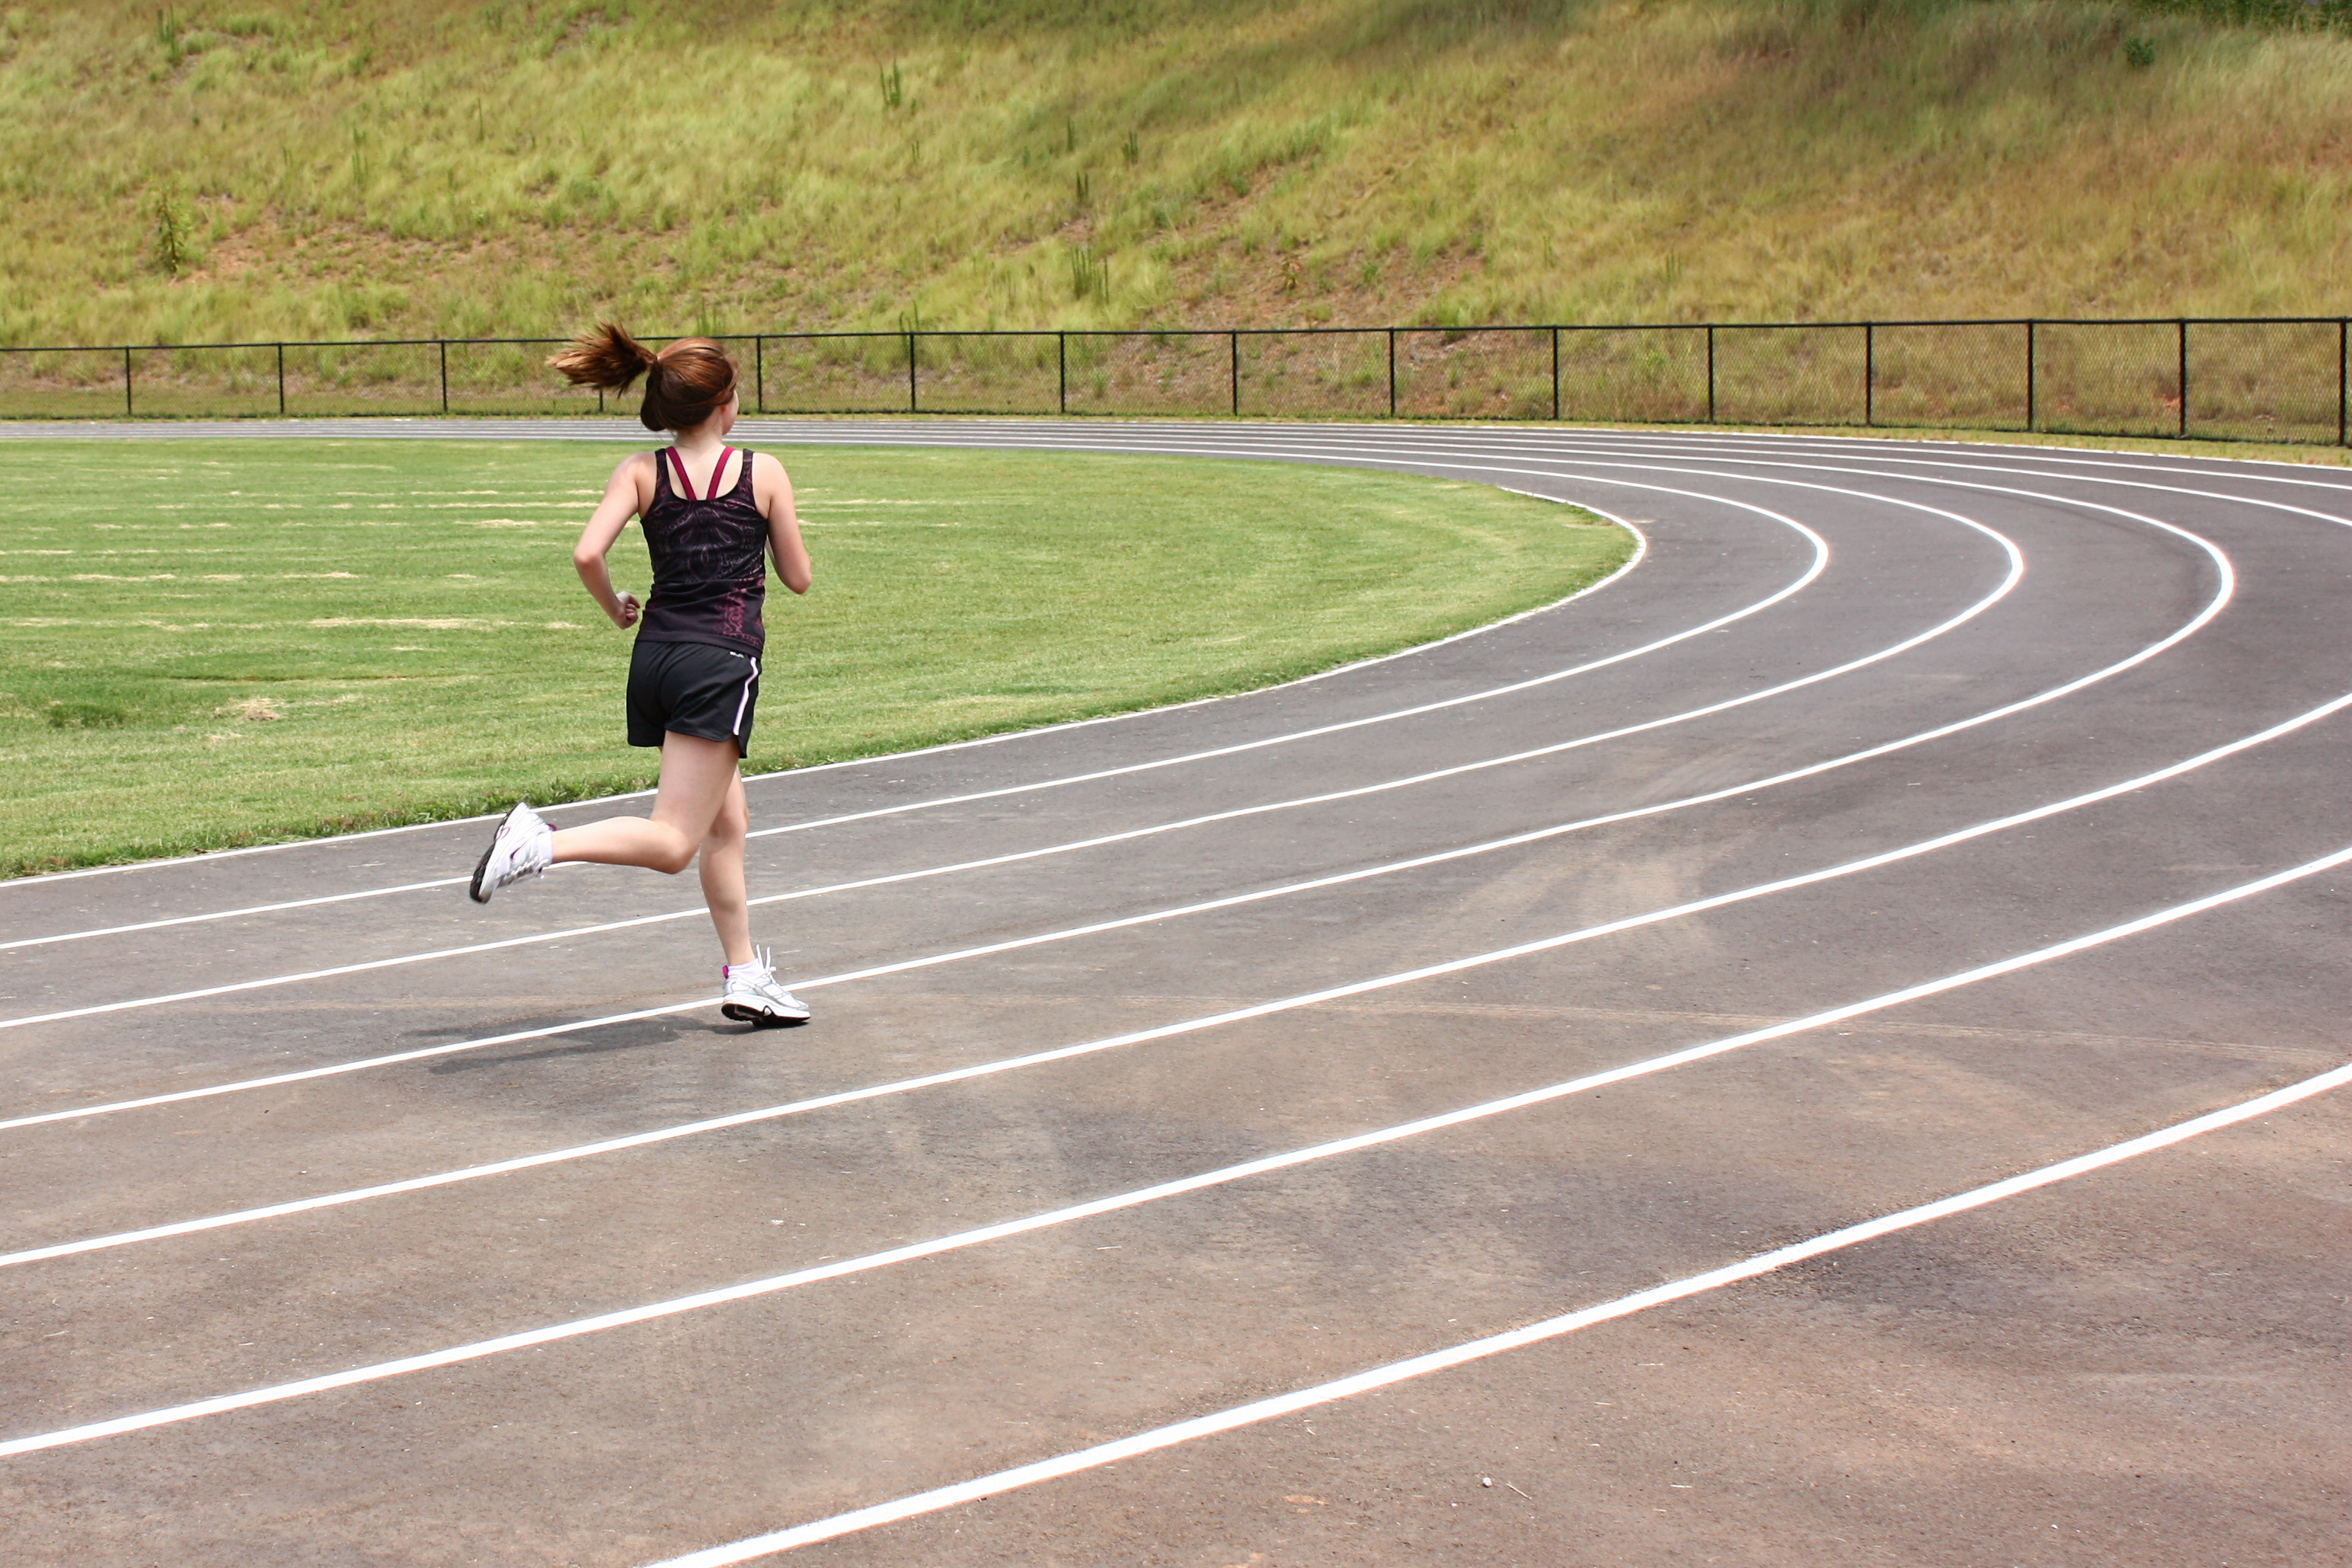 A cute young girl running on a track photo